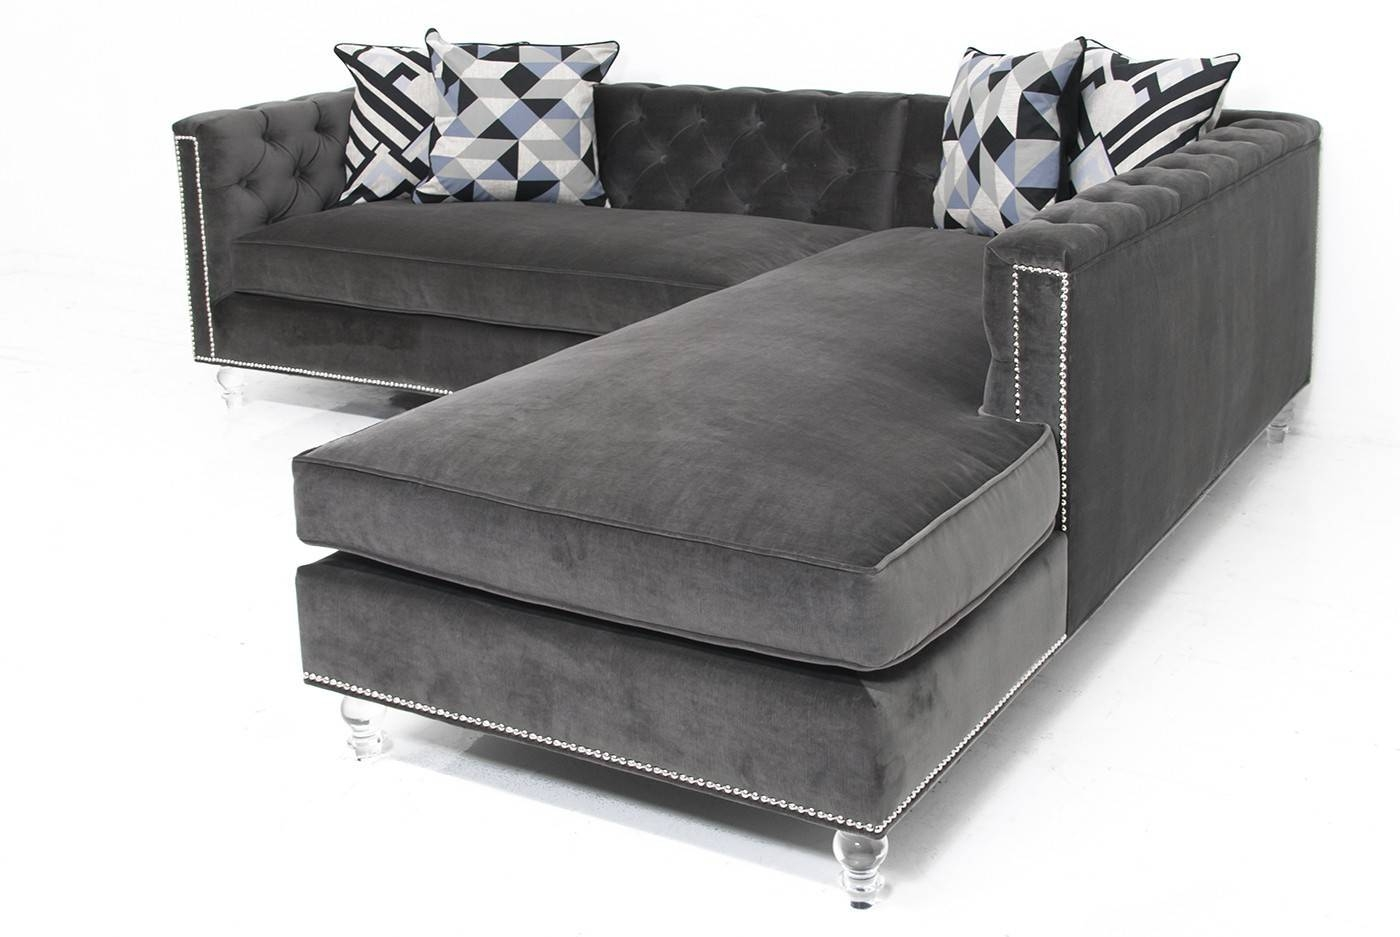 modern grey sofa with chaise western sofas tufted sectional beds design stunning